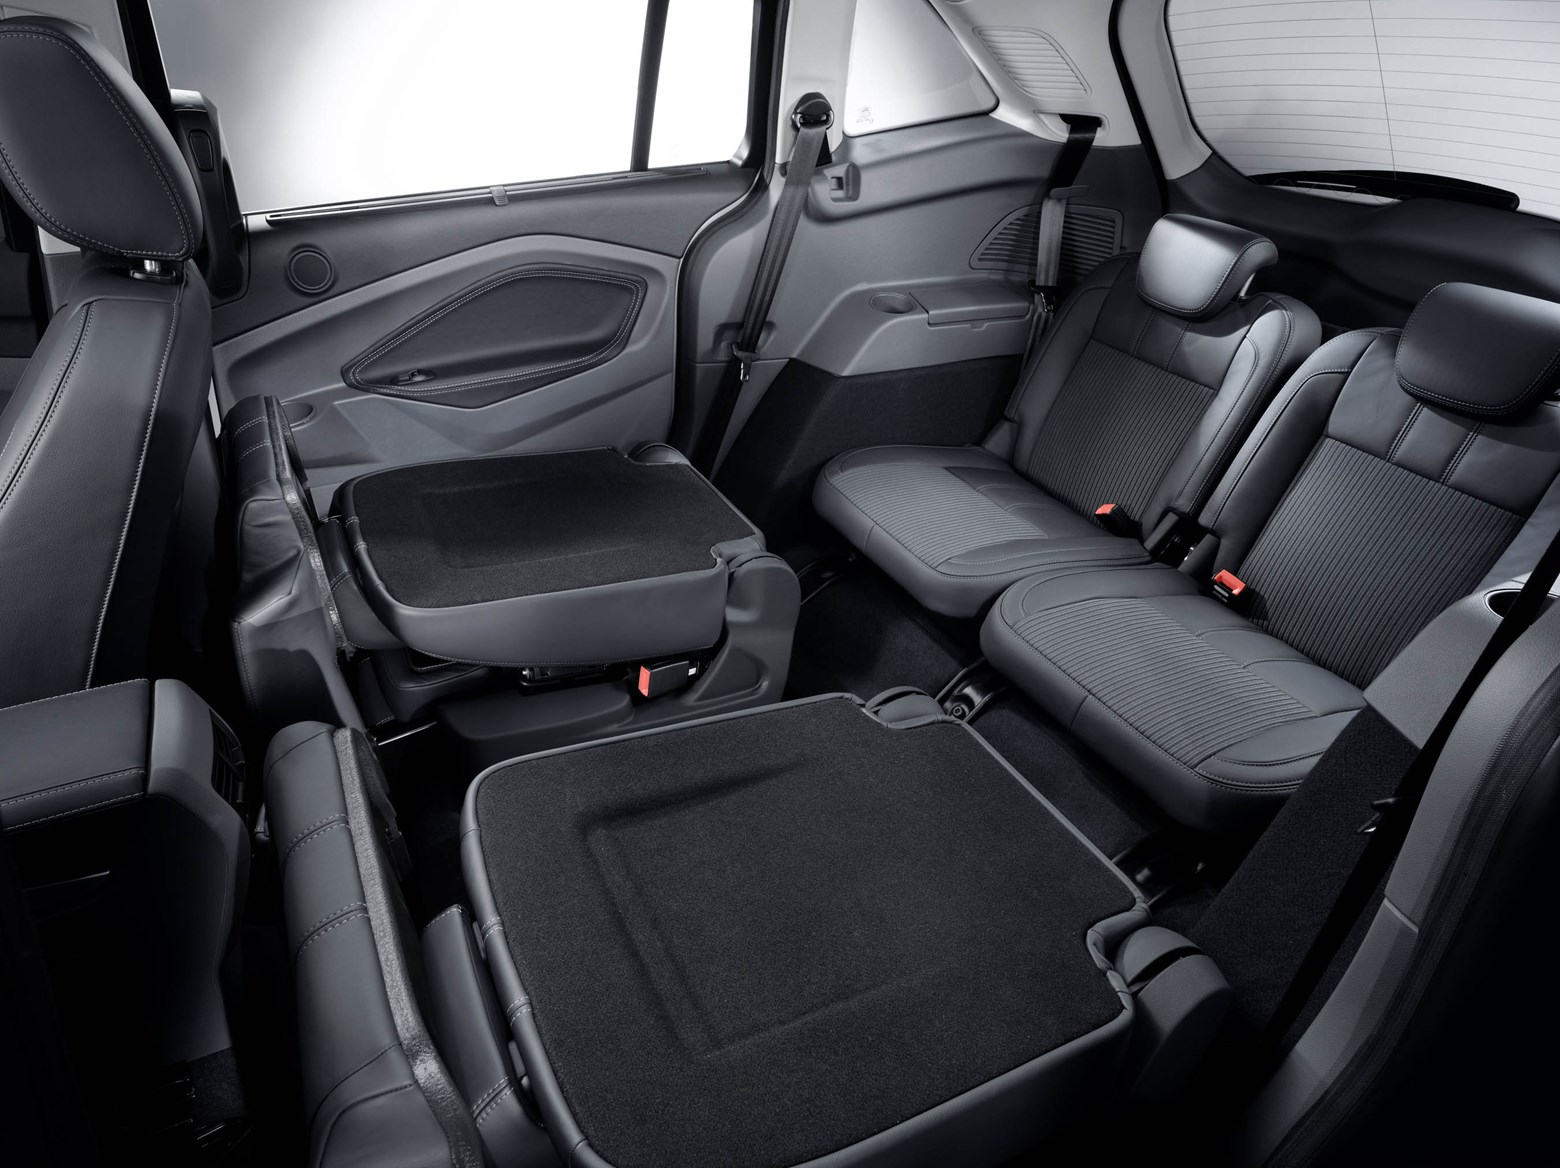 View All Images Of The Ford C MAX